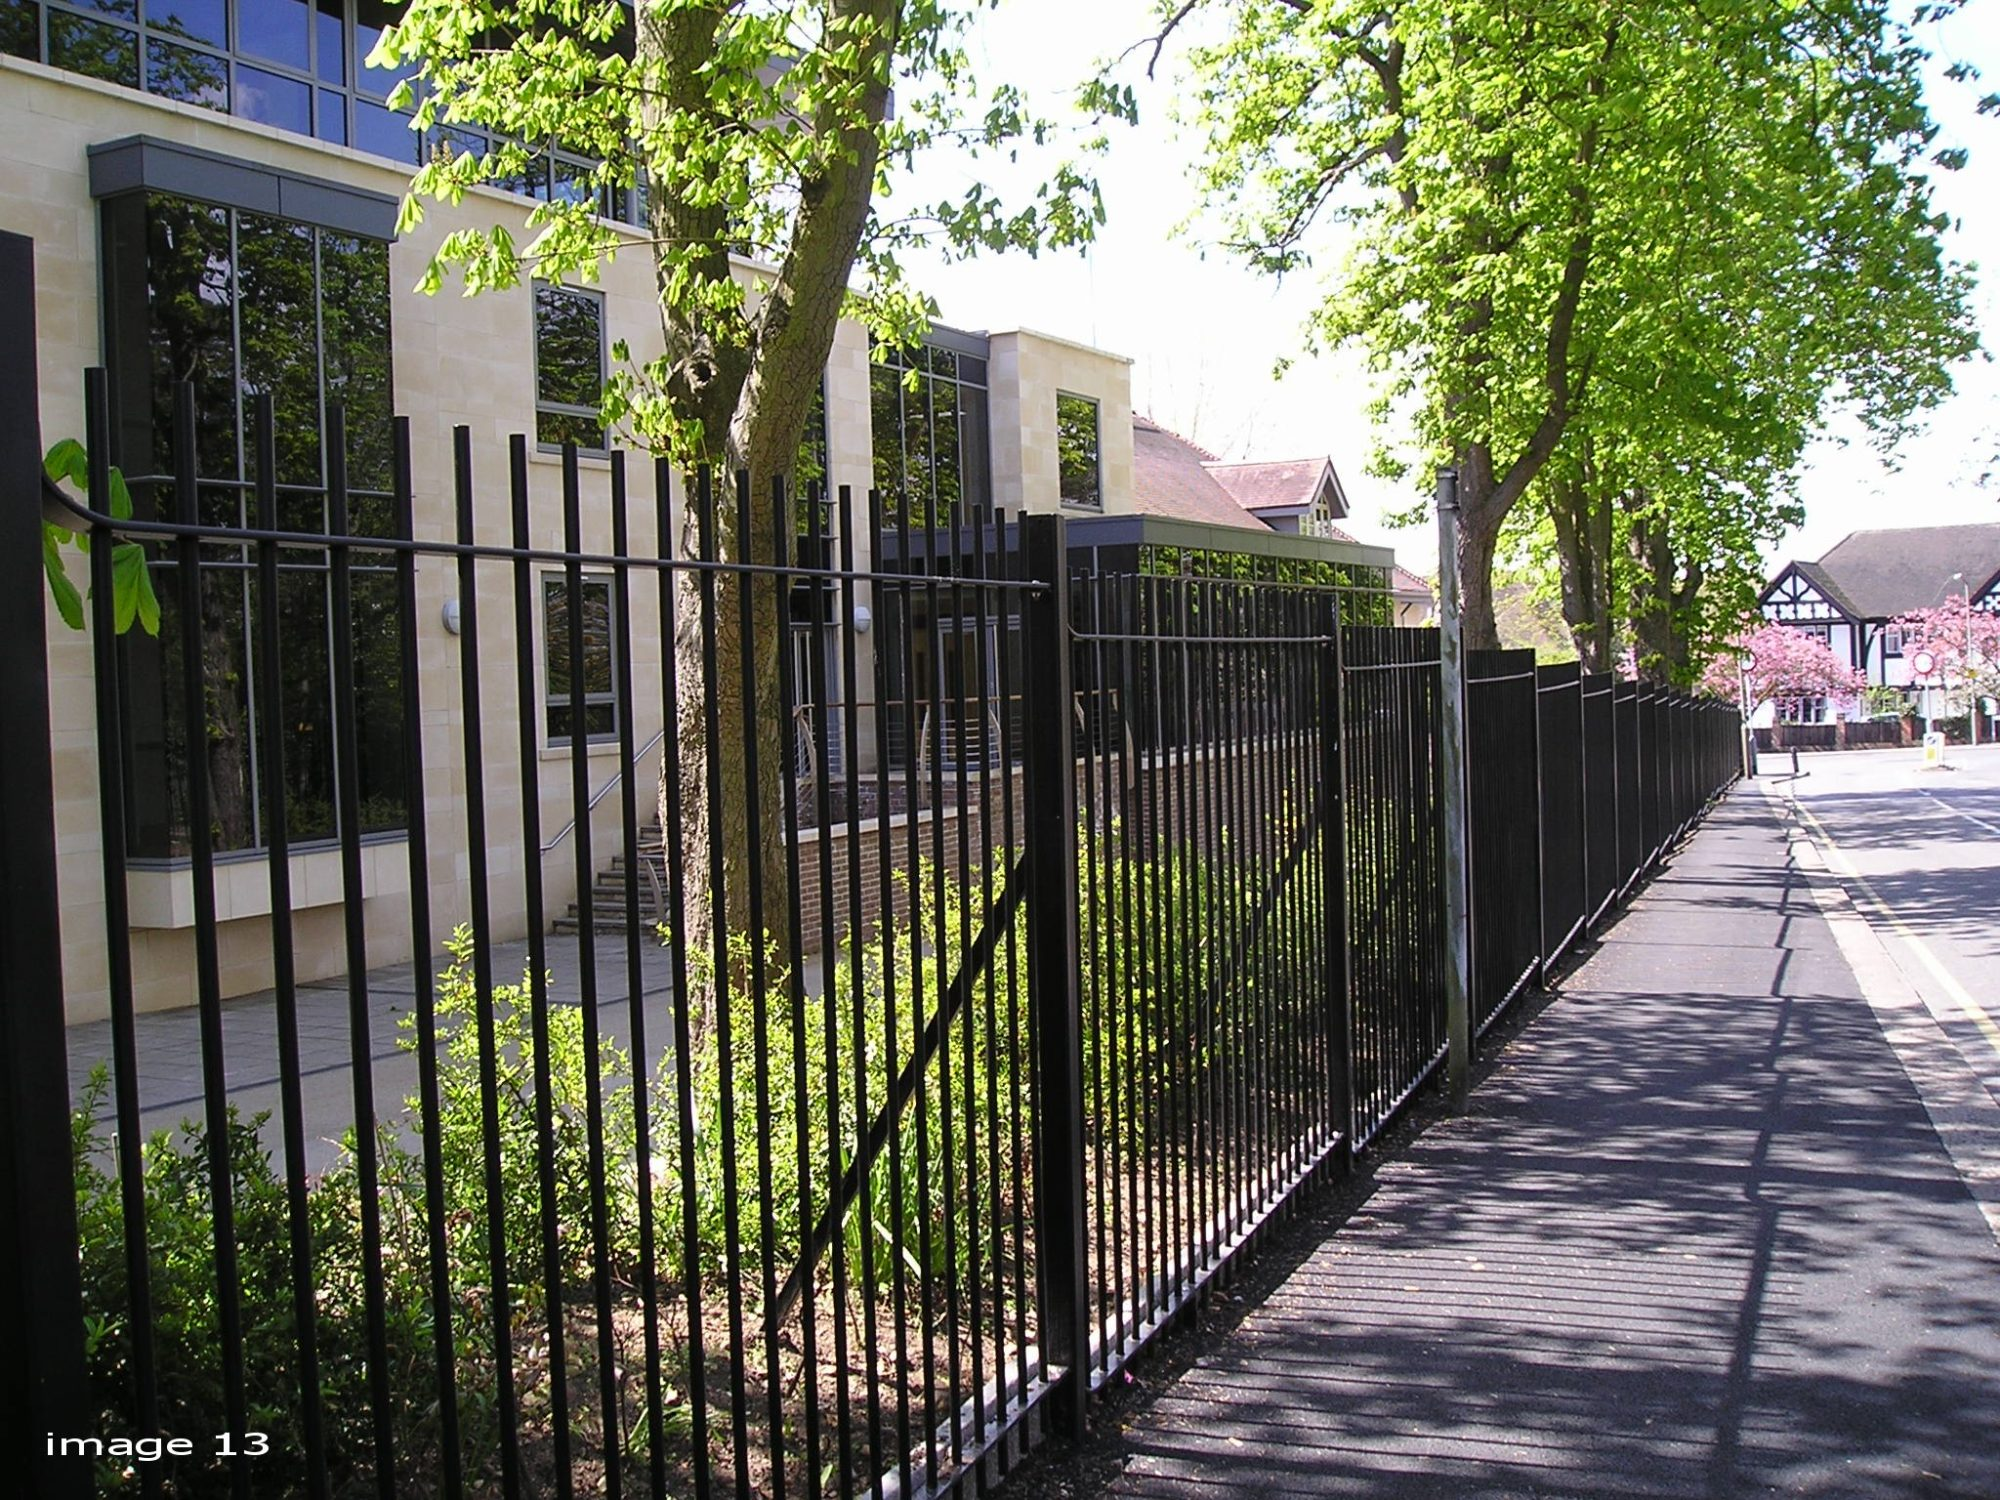 Vertical Steel Railings For Parks Schools And Housing